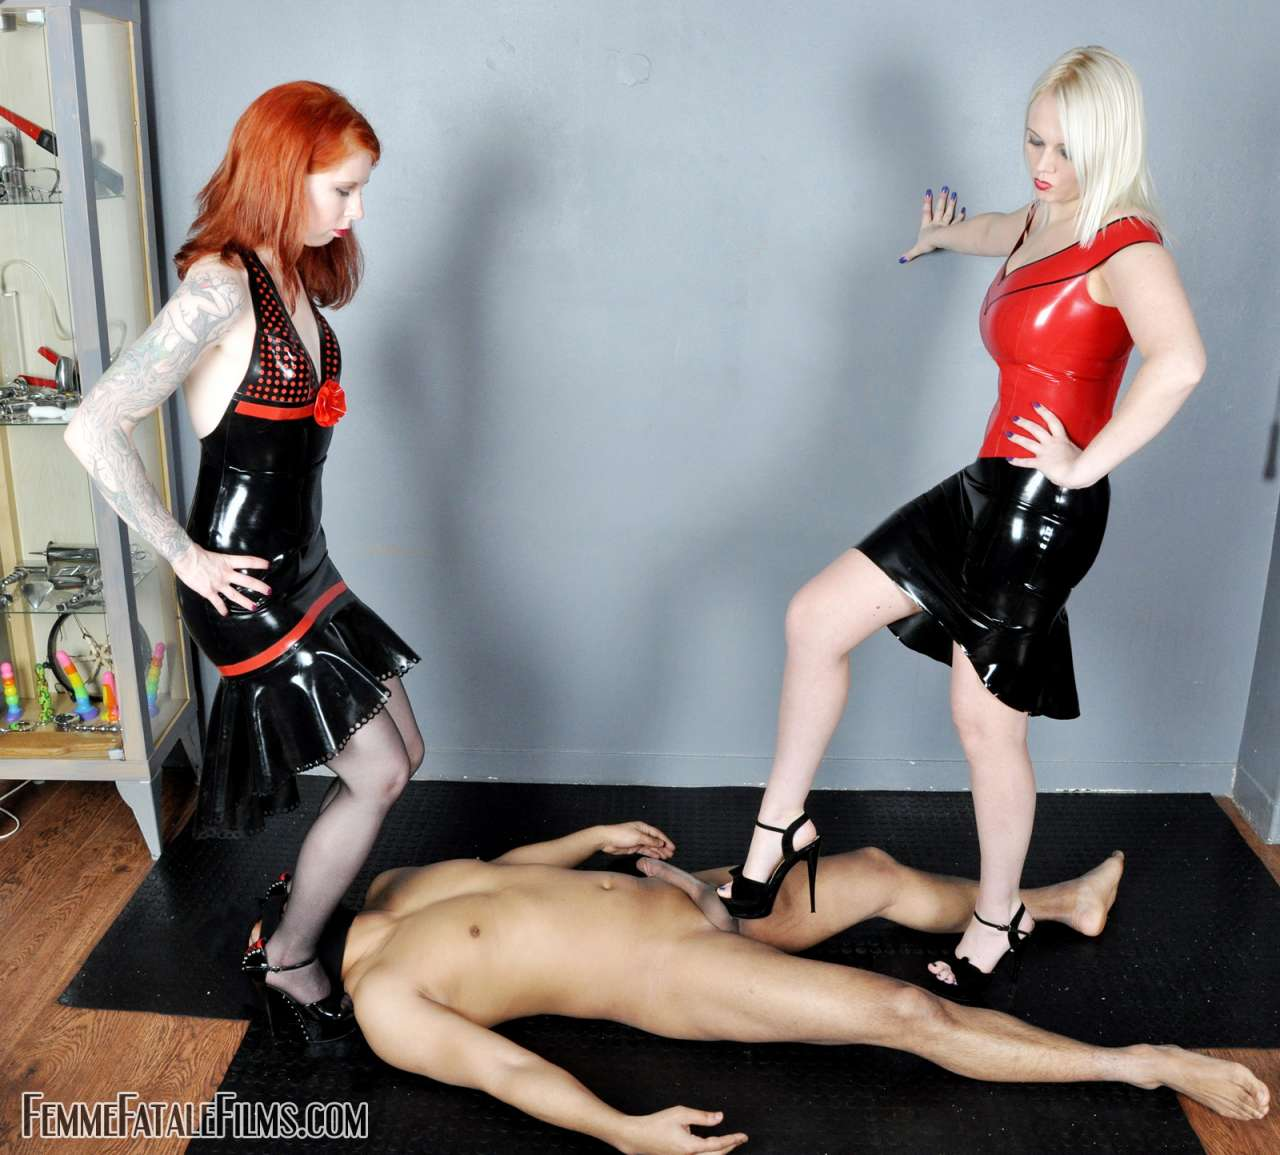 Picture #3 of Sexy fetish mates are stomping penis with high heel shoes getting slave ready for full-force balls kicking